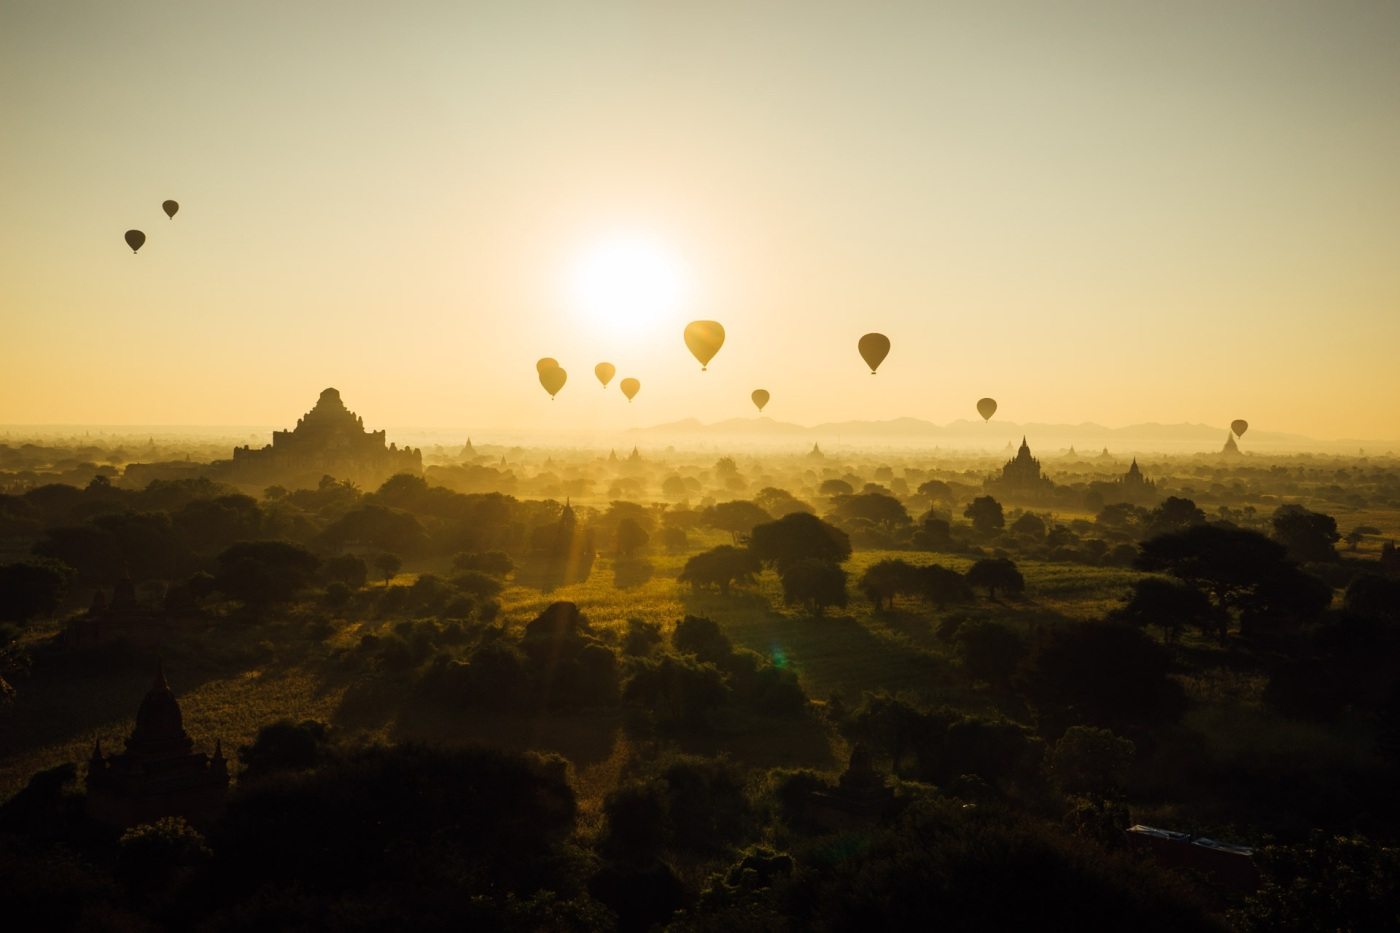 Hot air balloons in sunset